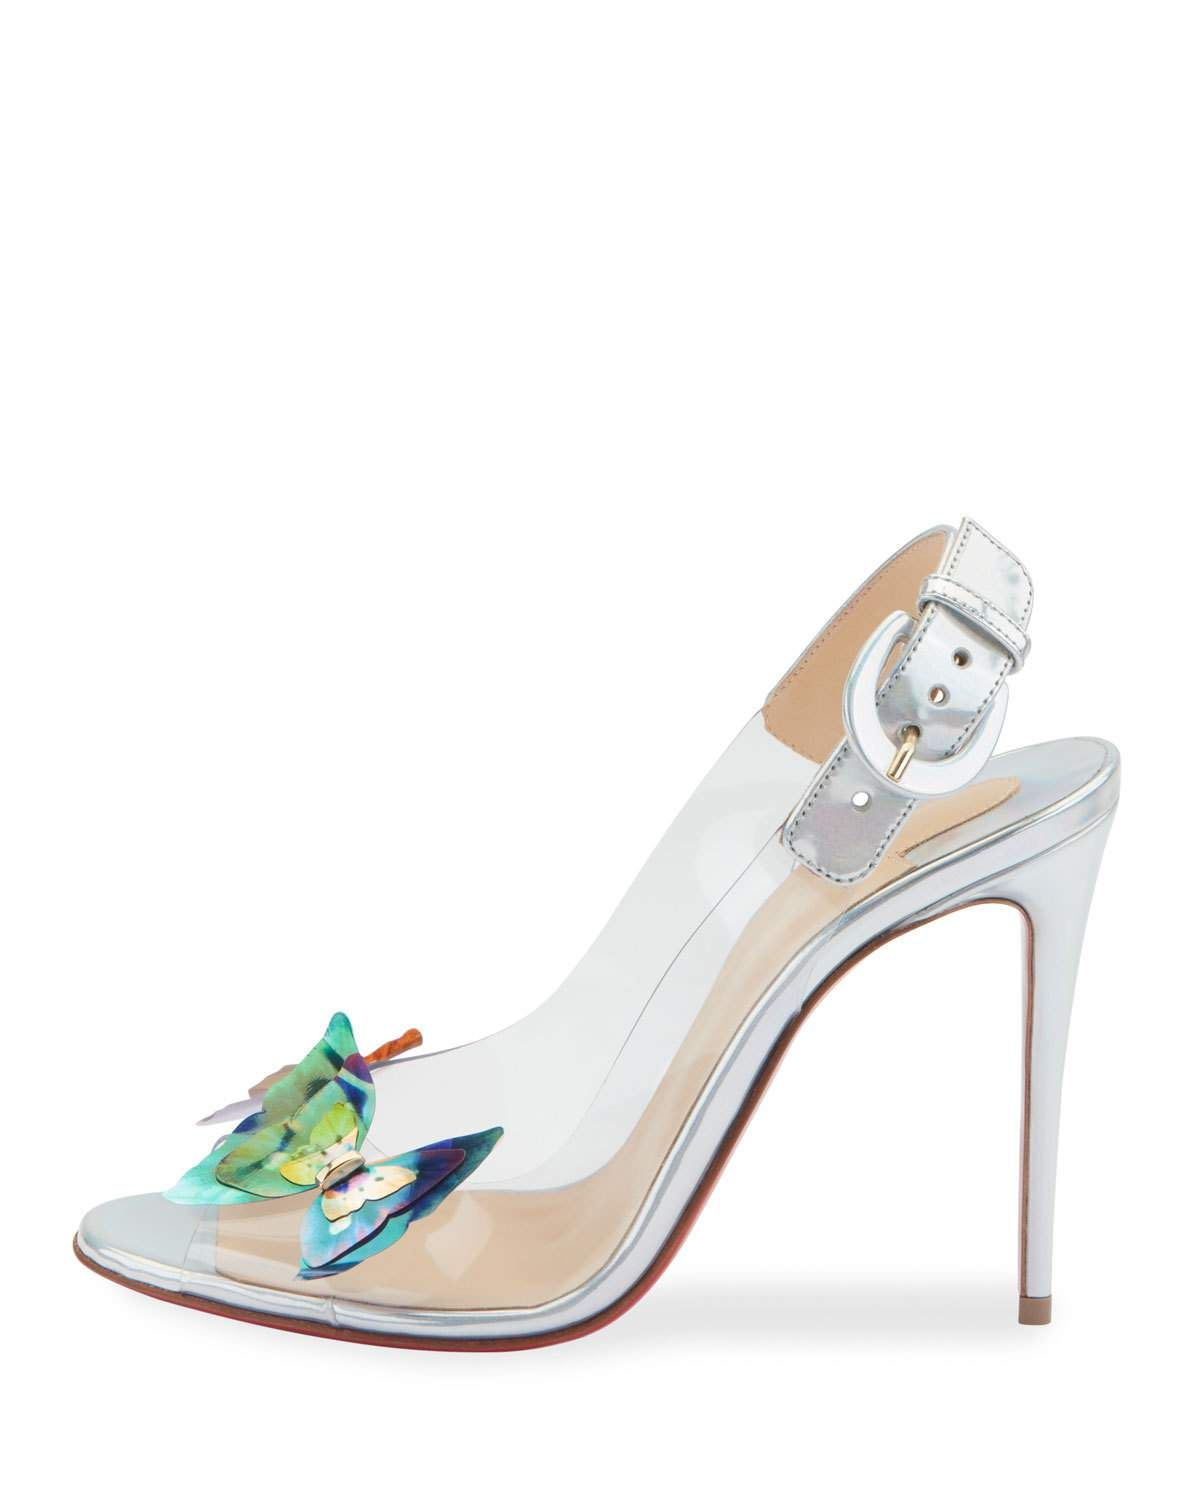 61fbb46f352a Christian Louboutin Ilcepoze 100 See-Through Red Sole Pumps with Butterfly    Neiman Marcus